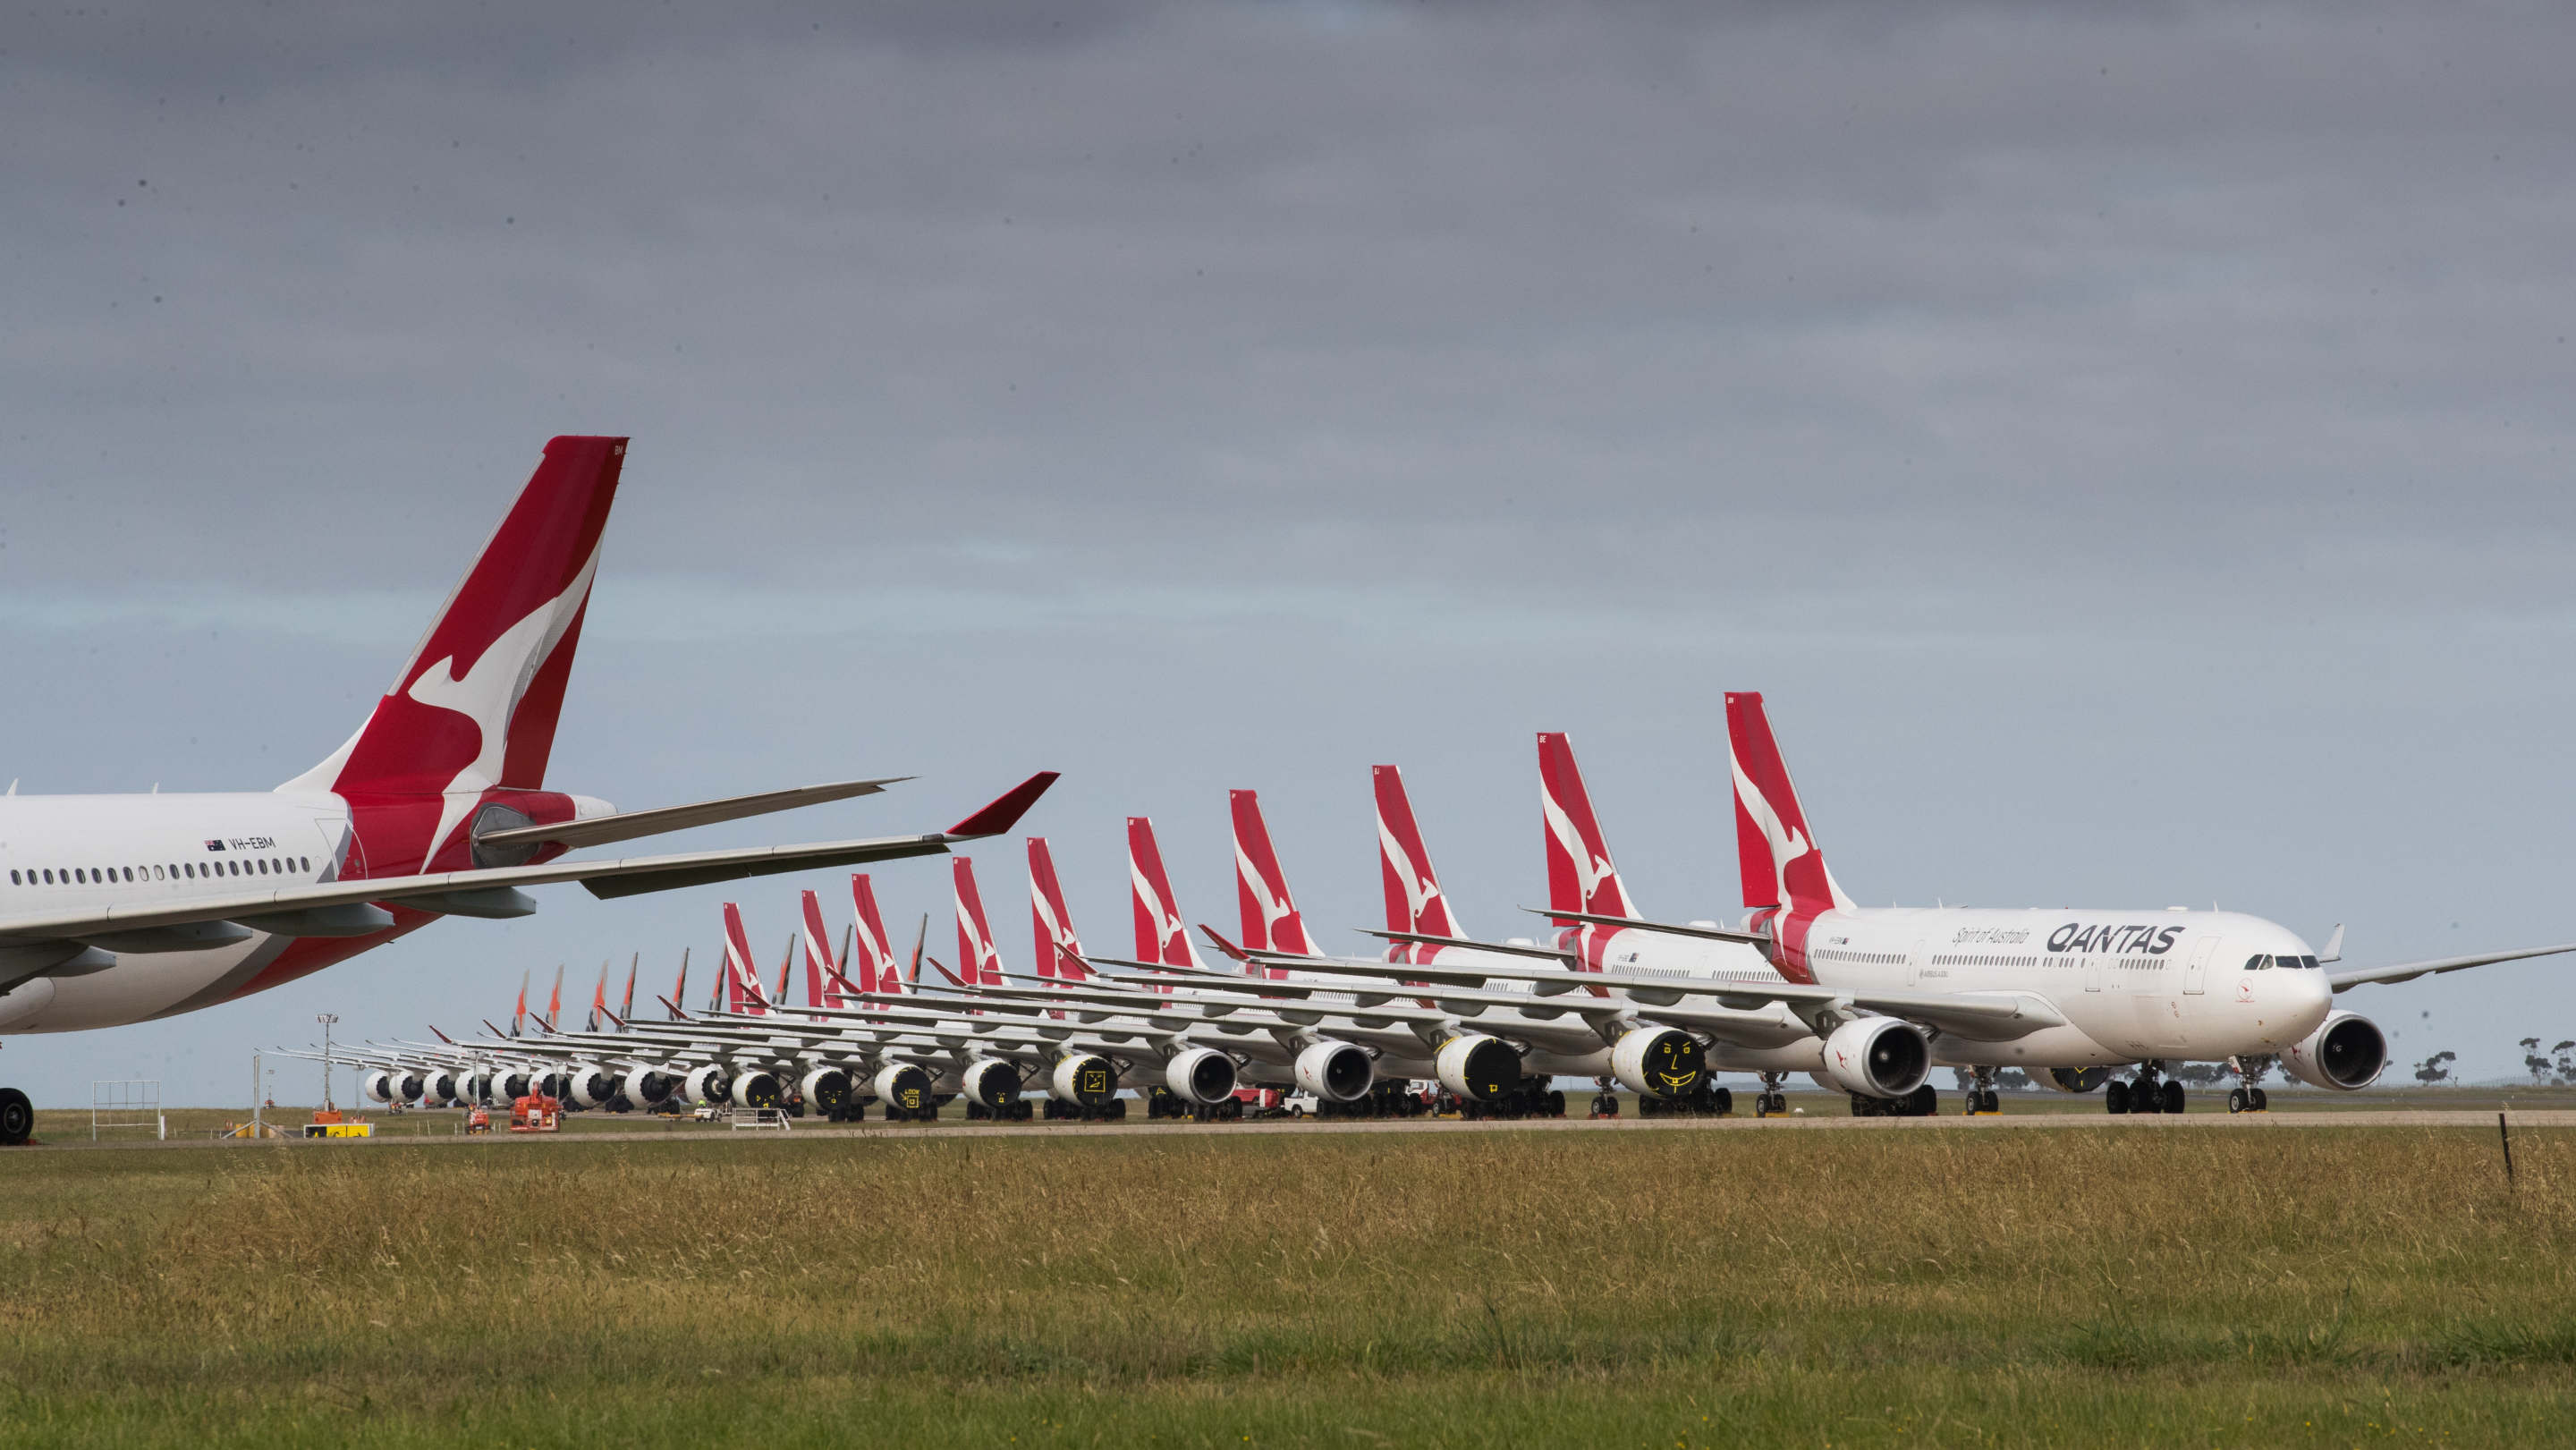 Qantas stuck on the tarmac in pandemic recovery journey